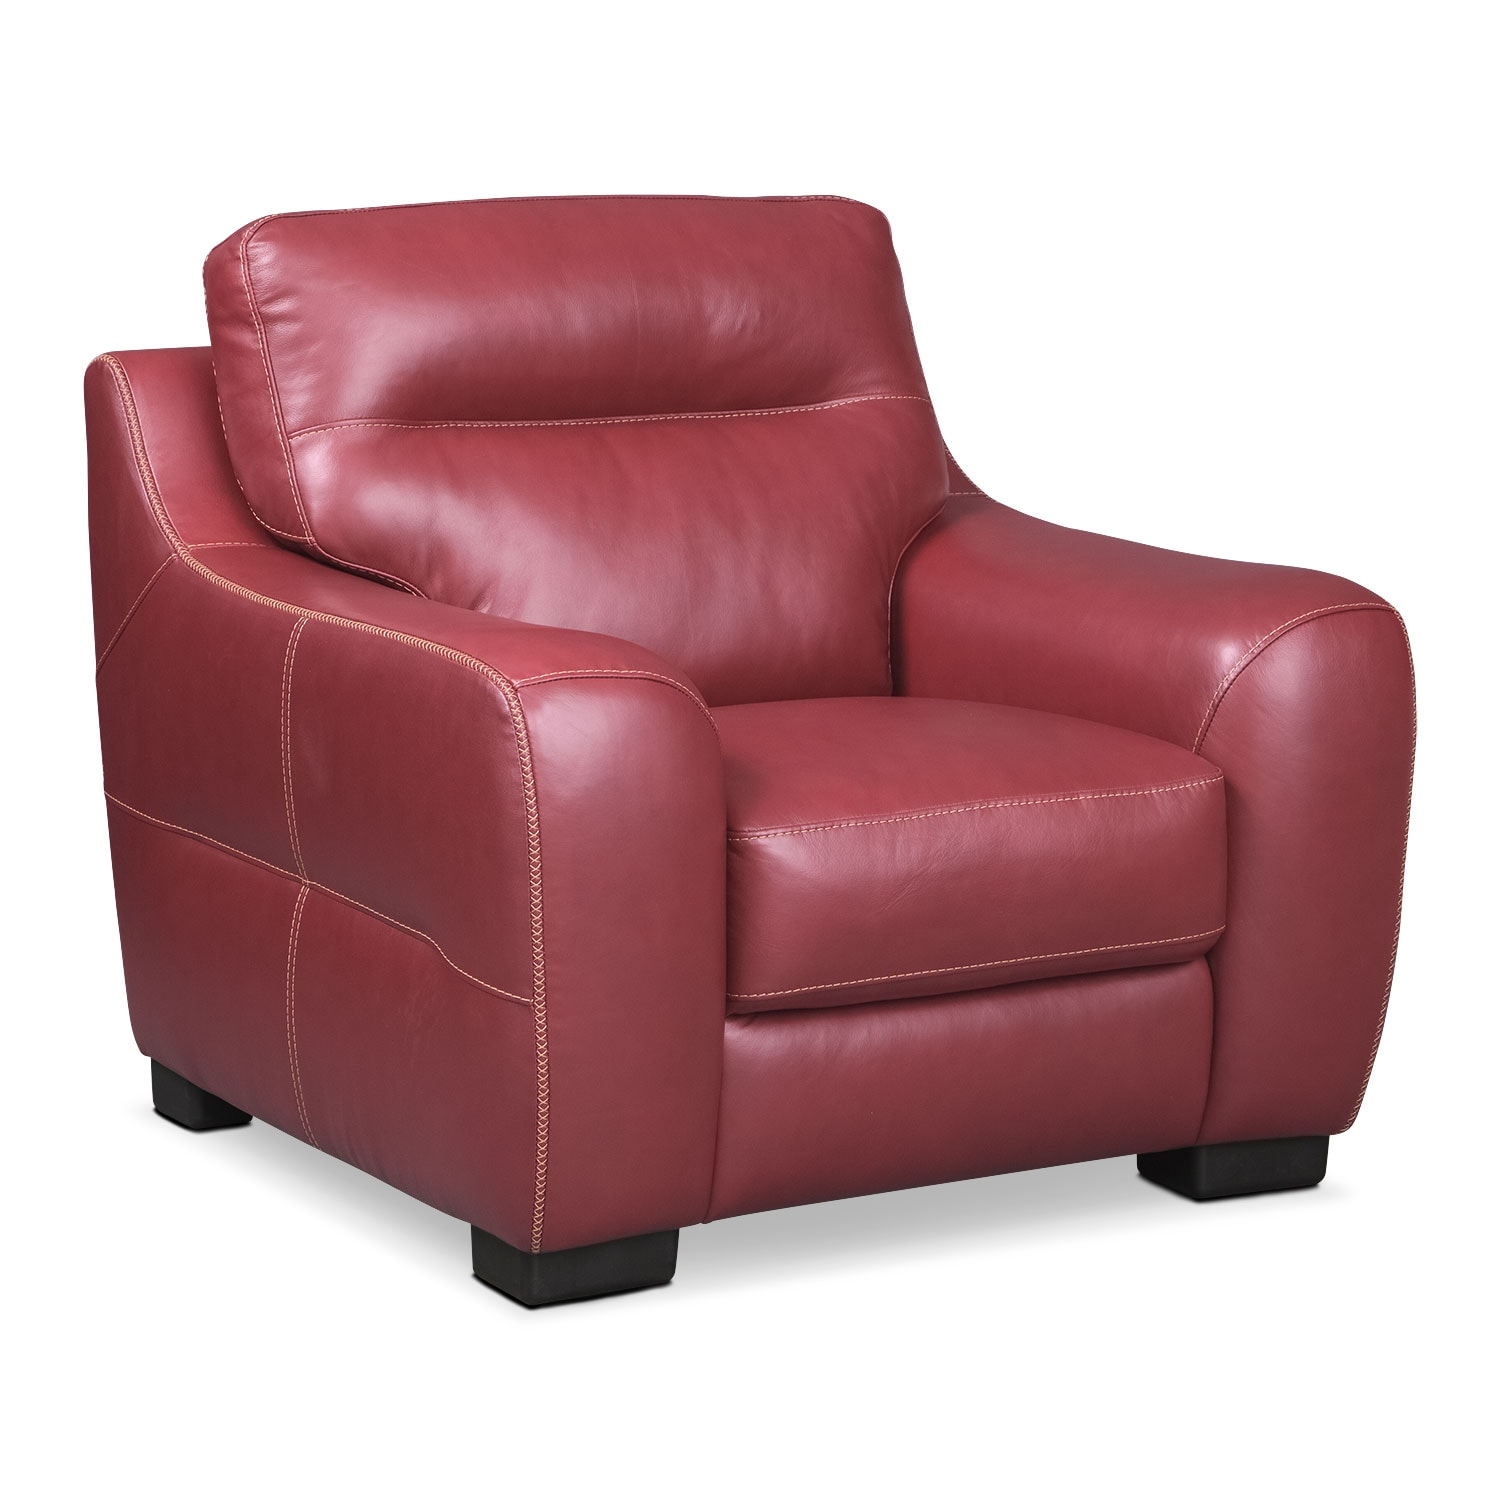 Living Room Furniture - Rocco Red Chair